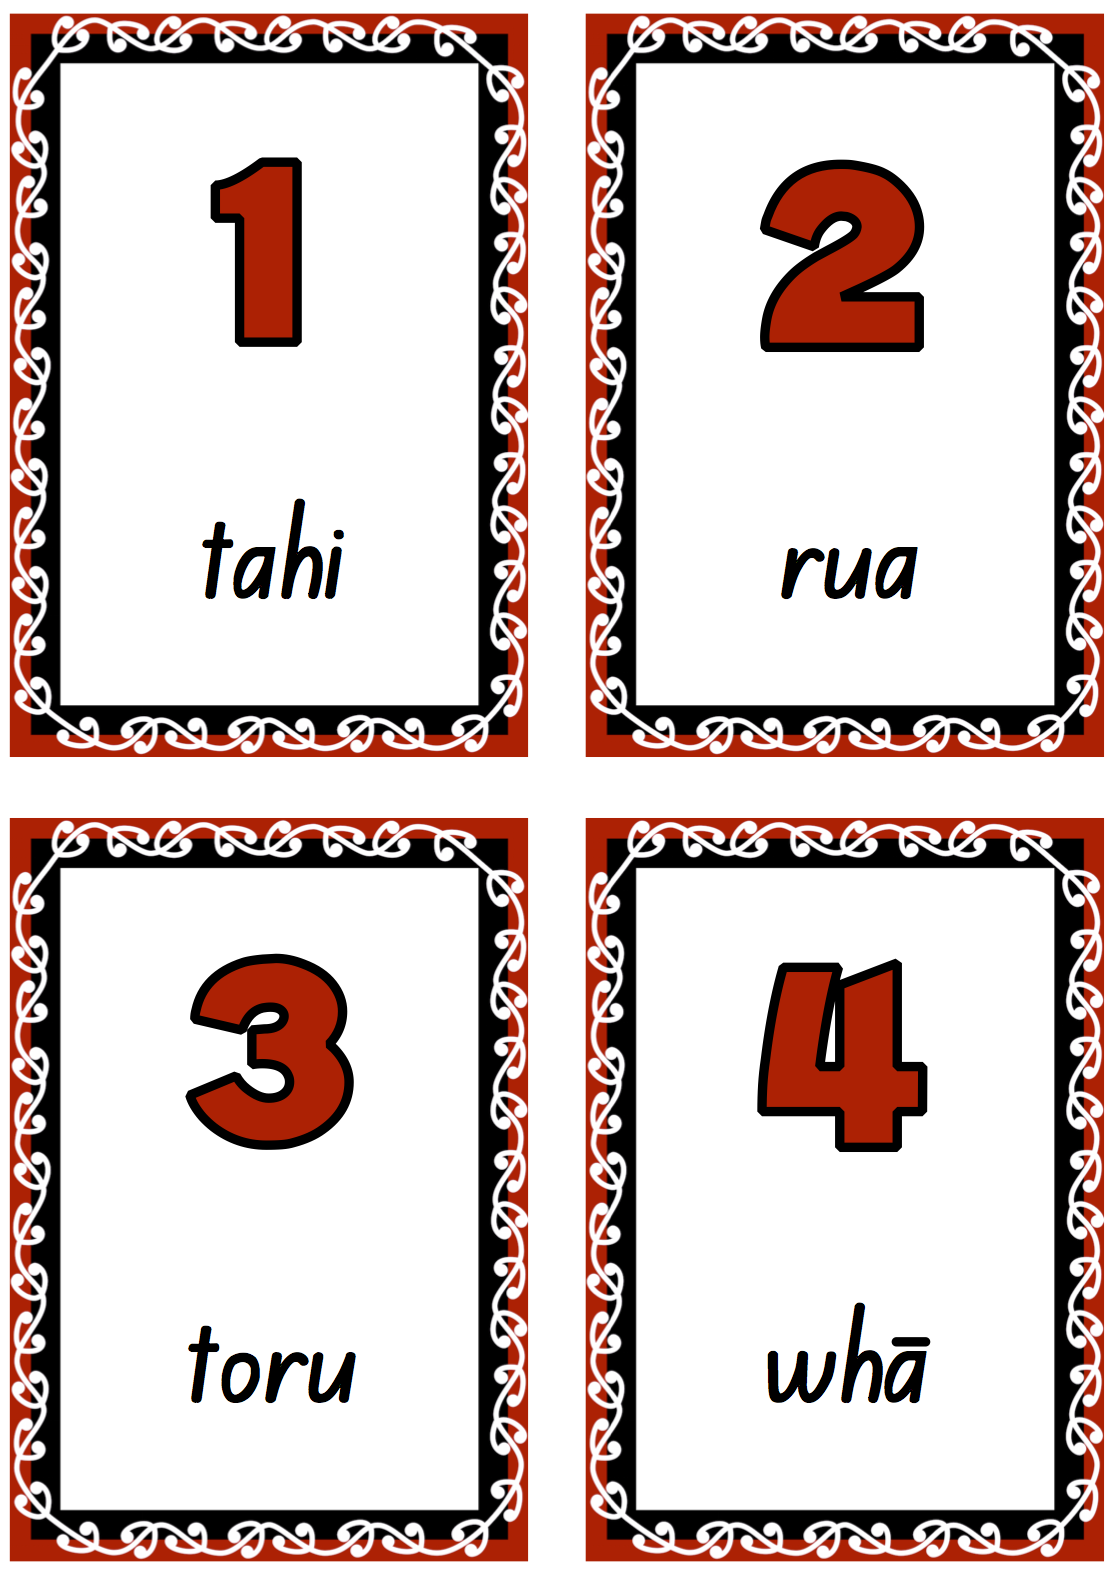 Printable Number Chart also Original additionally Weather Activity Pack as well Ddb D Df Ab B C furthermore Original. on preschool number bingo 1 10